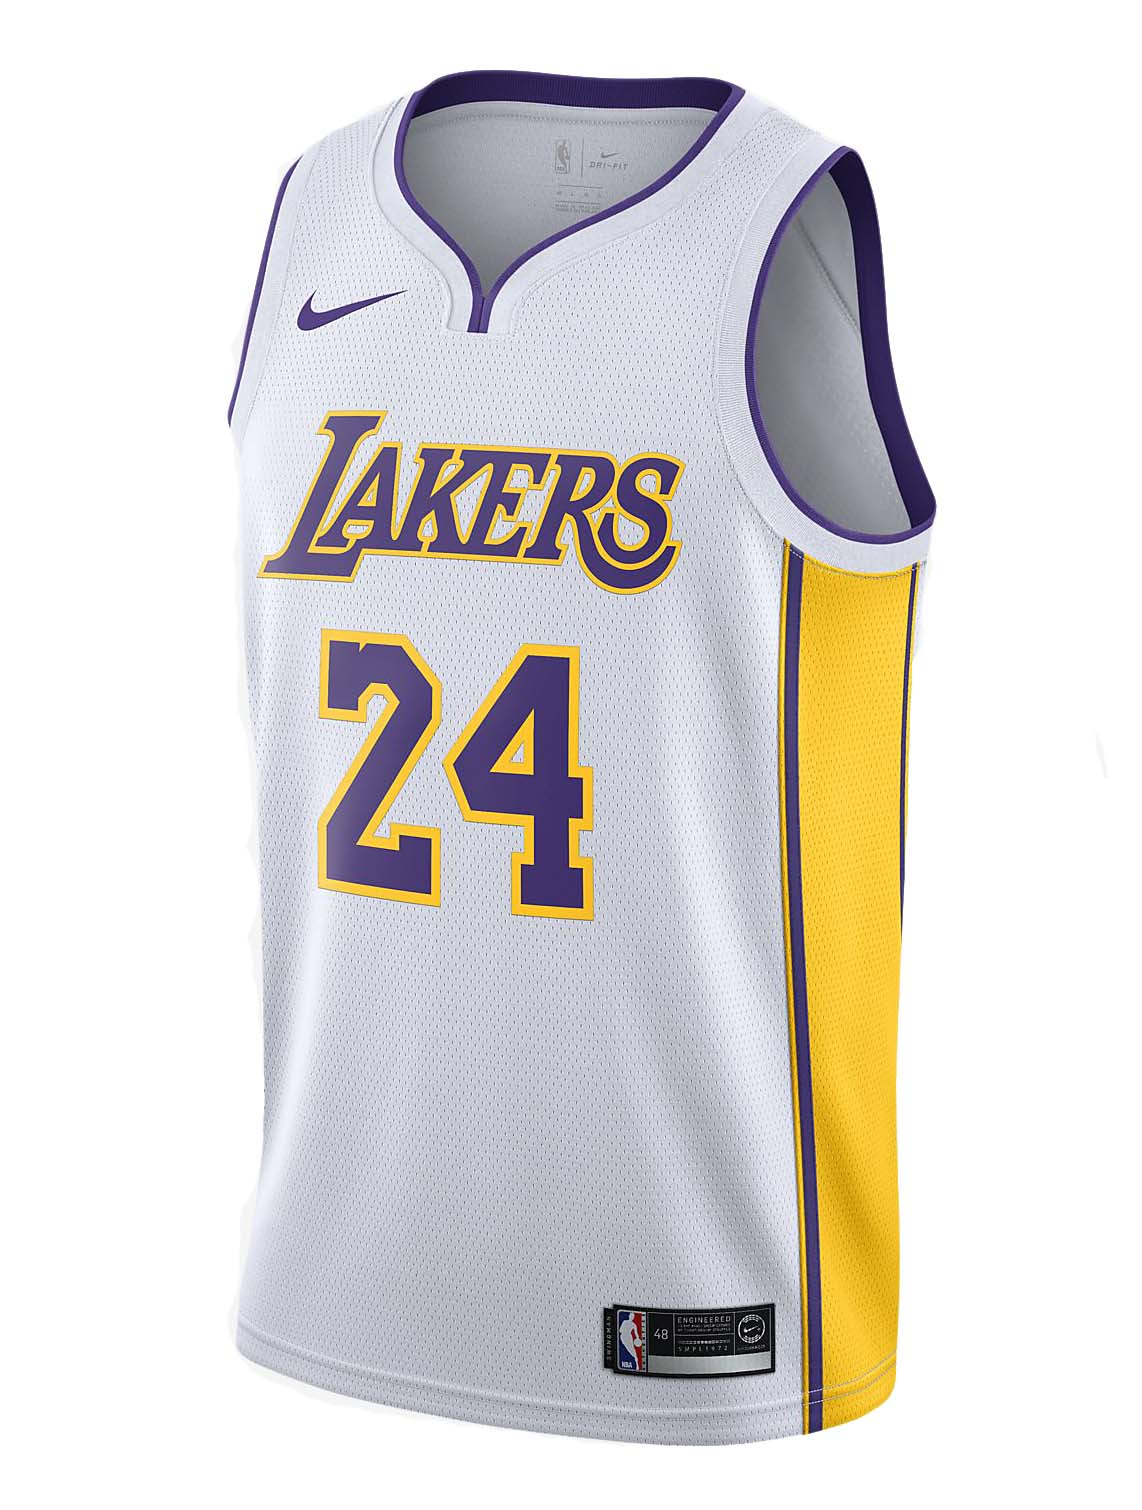 2b564c6d297f3f Nike Kobe Bryant Swingman Jersey Los Angeles Lakers White Aq2108-100 2xl 56  Gold. About this product. Picture 1 of 3  Picture 2 of 3 ...